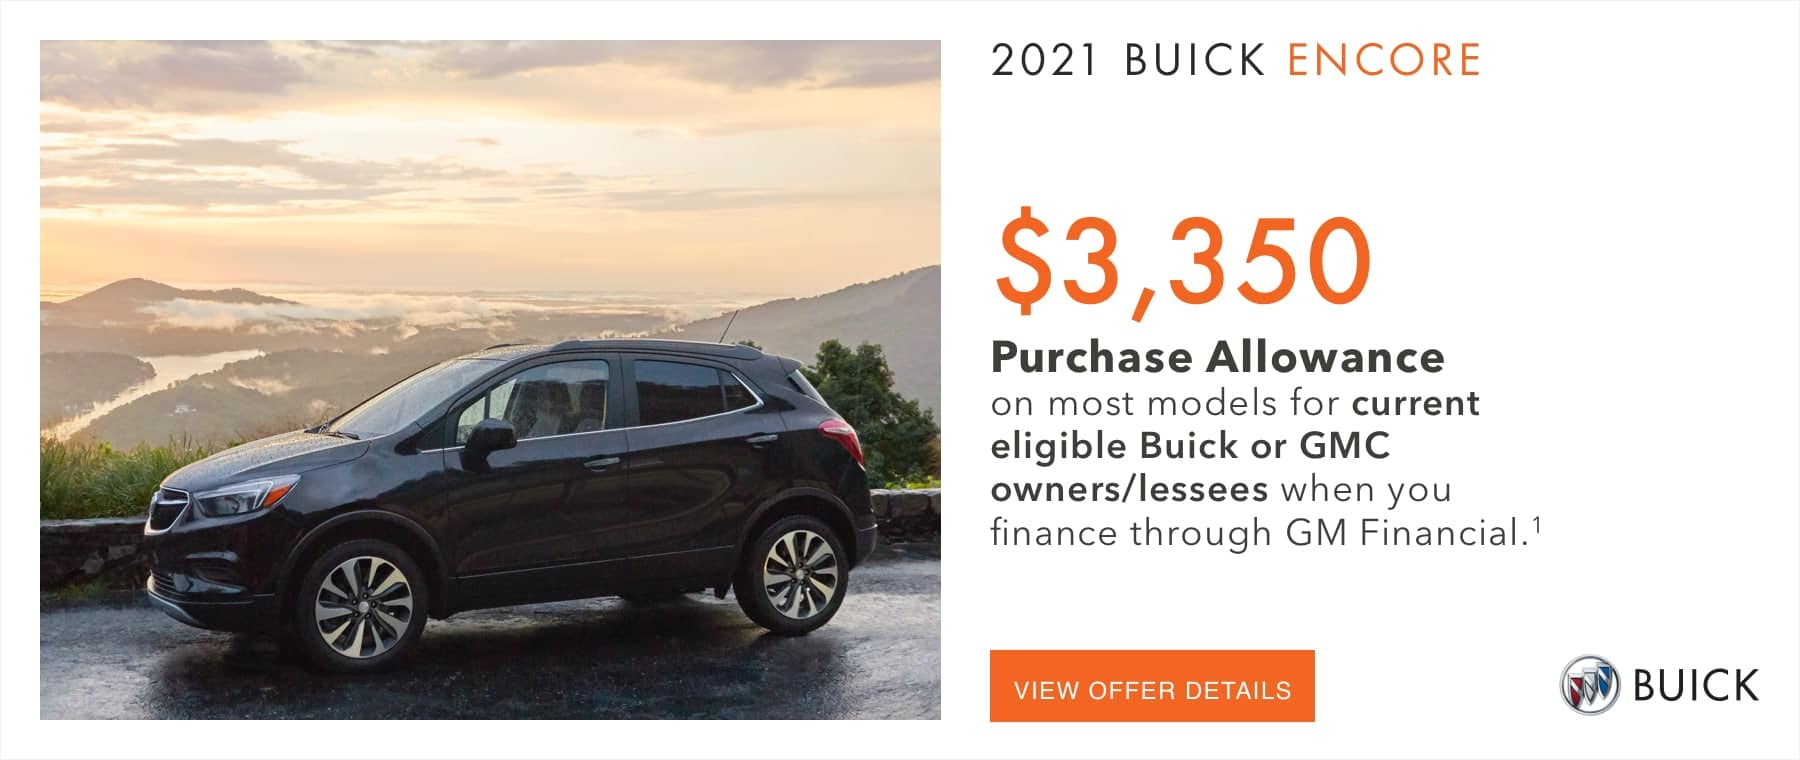 $3,350 Purchase Allowance on most models for current eligible Buick or GMC owners/lessees when you finance through GM Financial.1